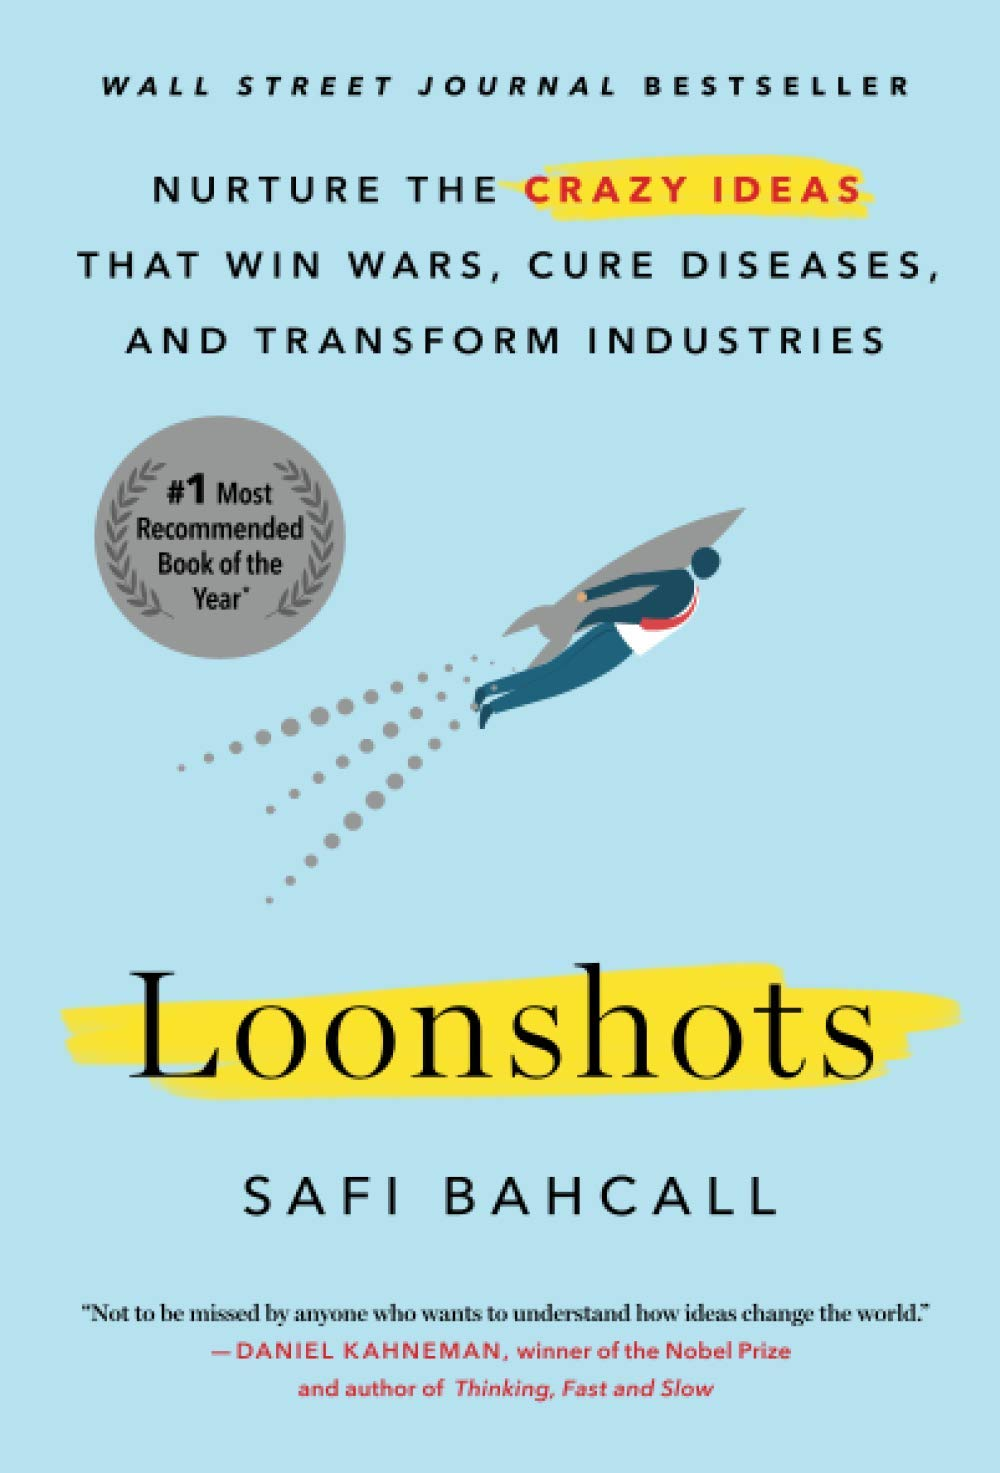 Image of book cover for Loonshots: Nurture the Crazy Ideas that Win Wars, Cure Diseases, and Transform Industries